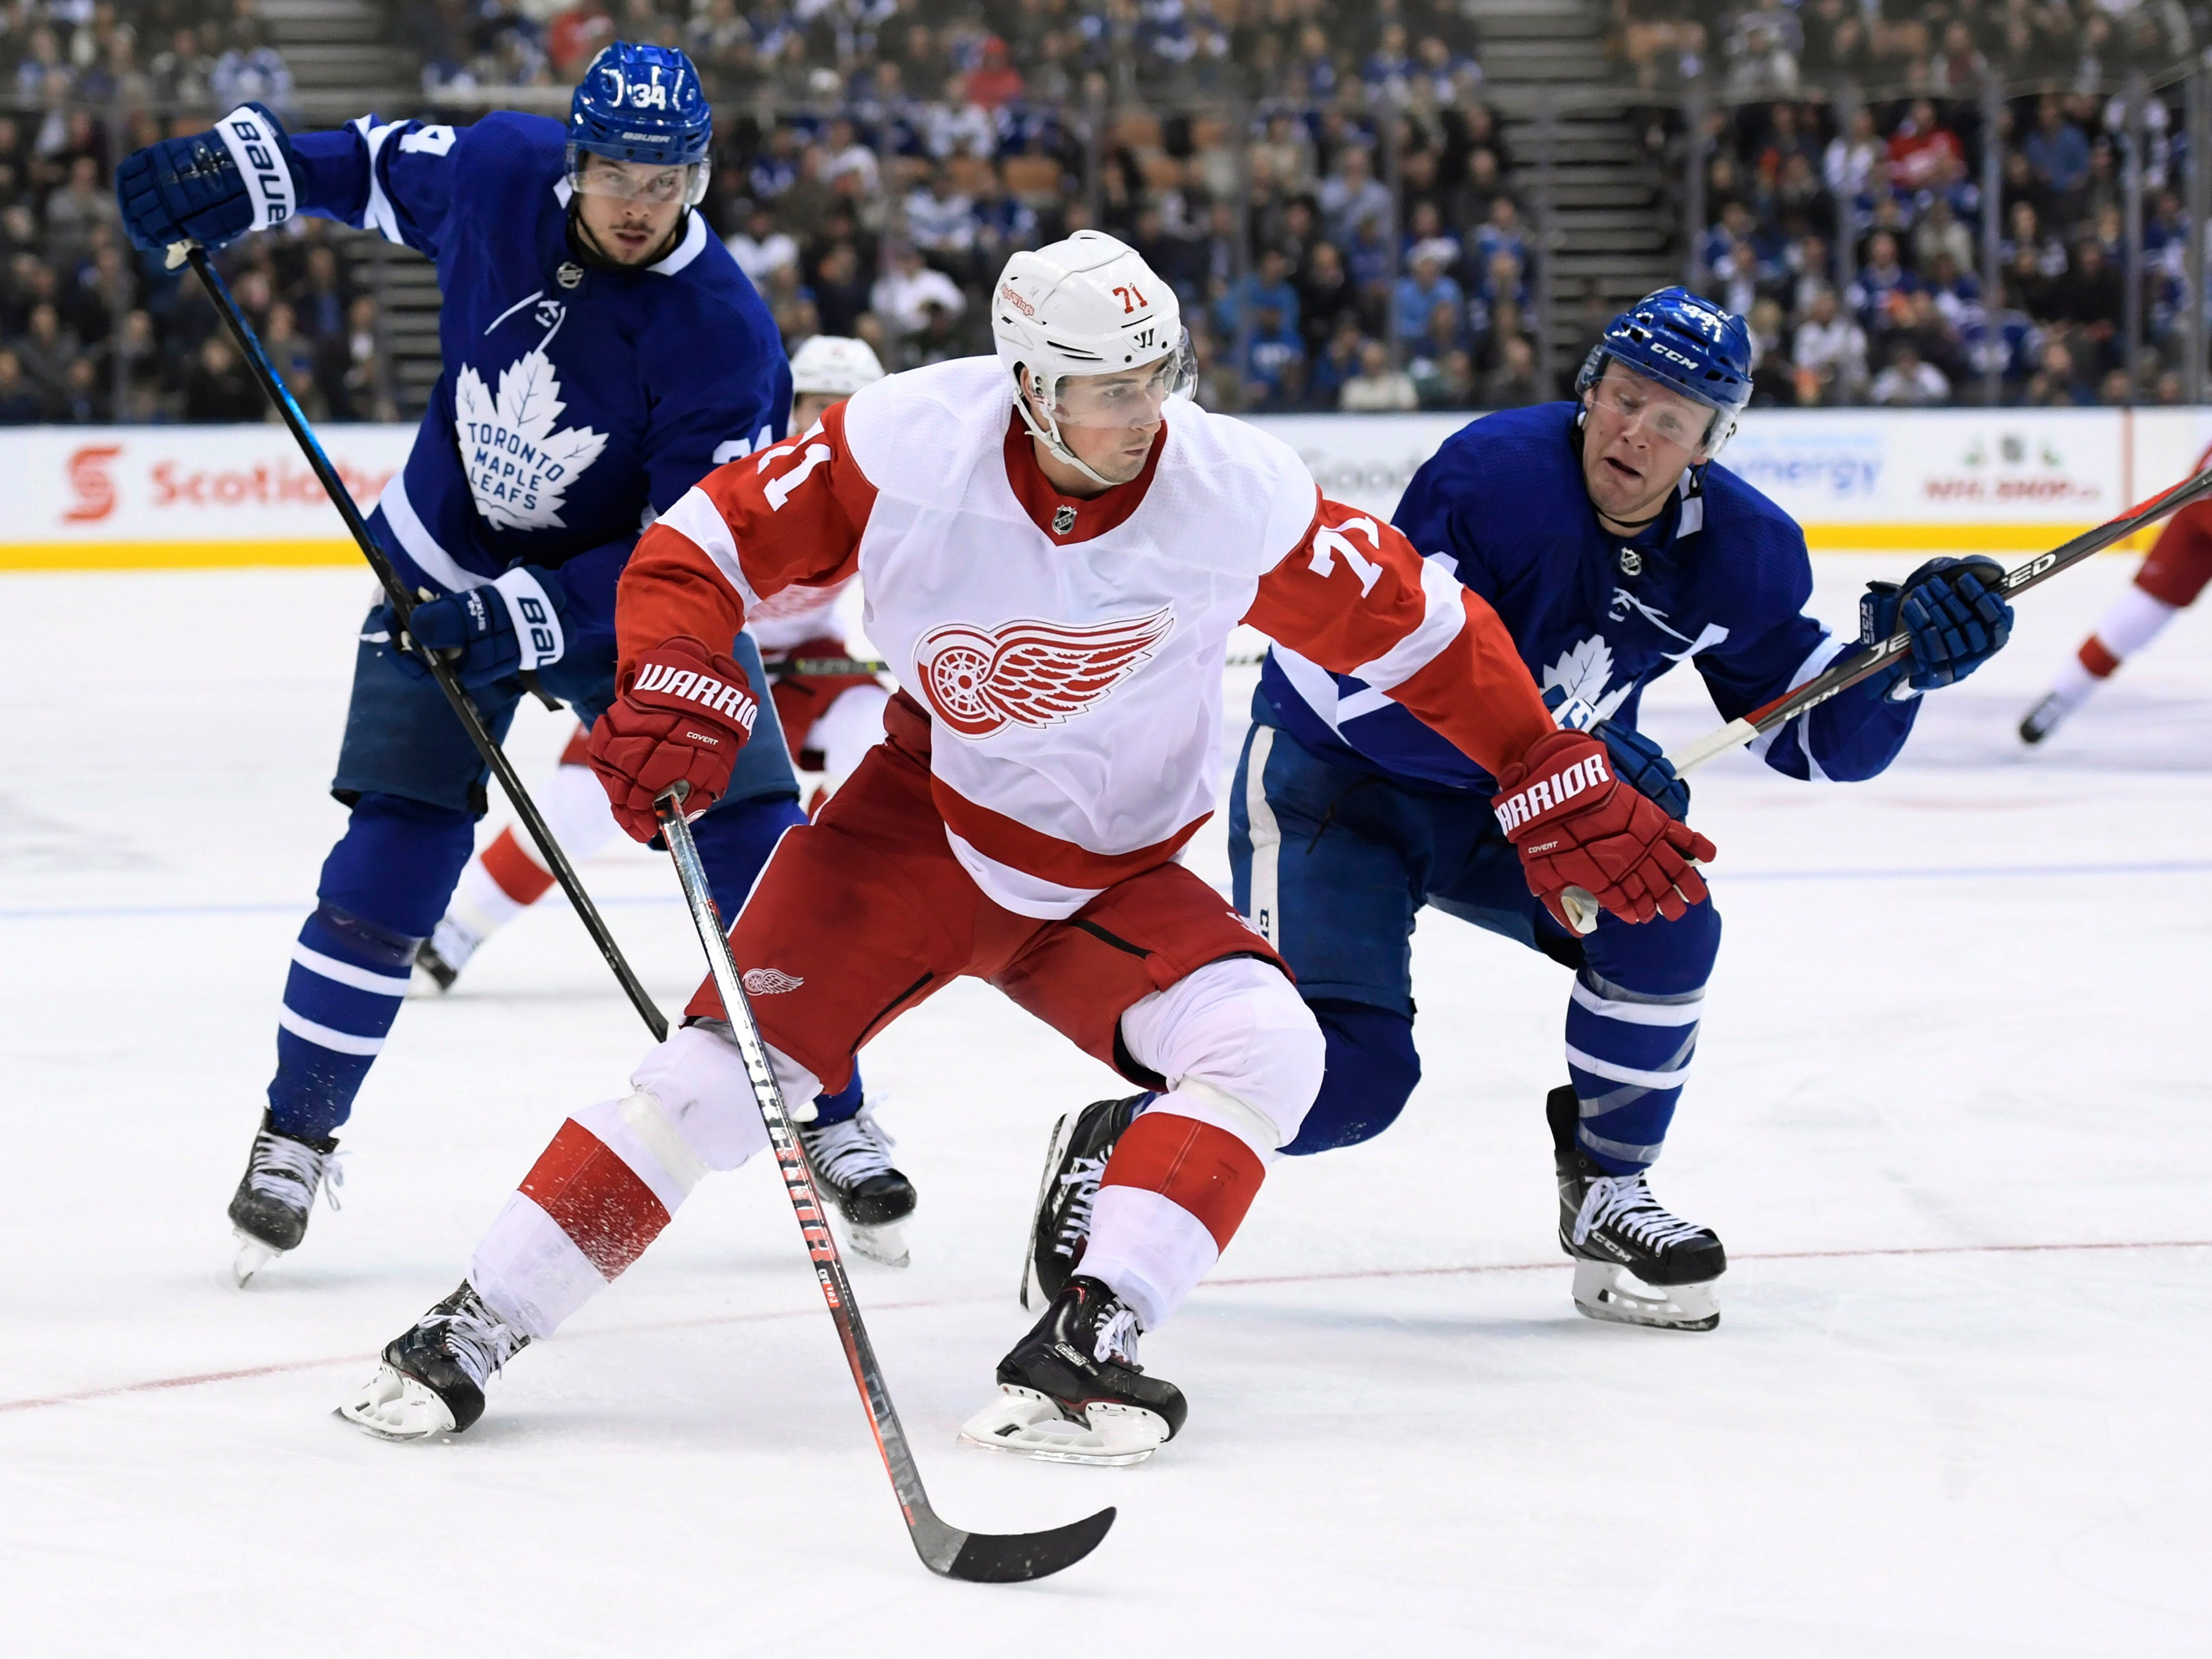 Red Wings center Dylan Larkin moves past Maple Leafs defenseman Morgan Rielly (44) as center Auston Matthews watches during the third period.